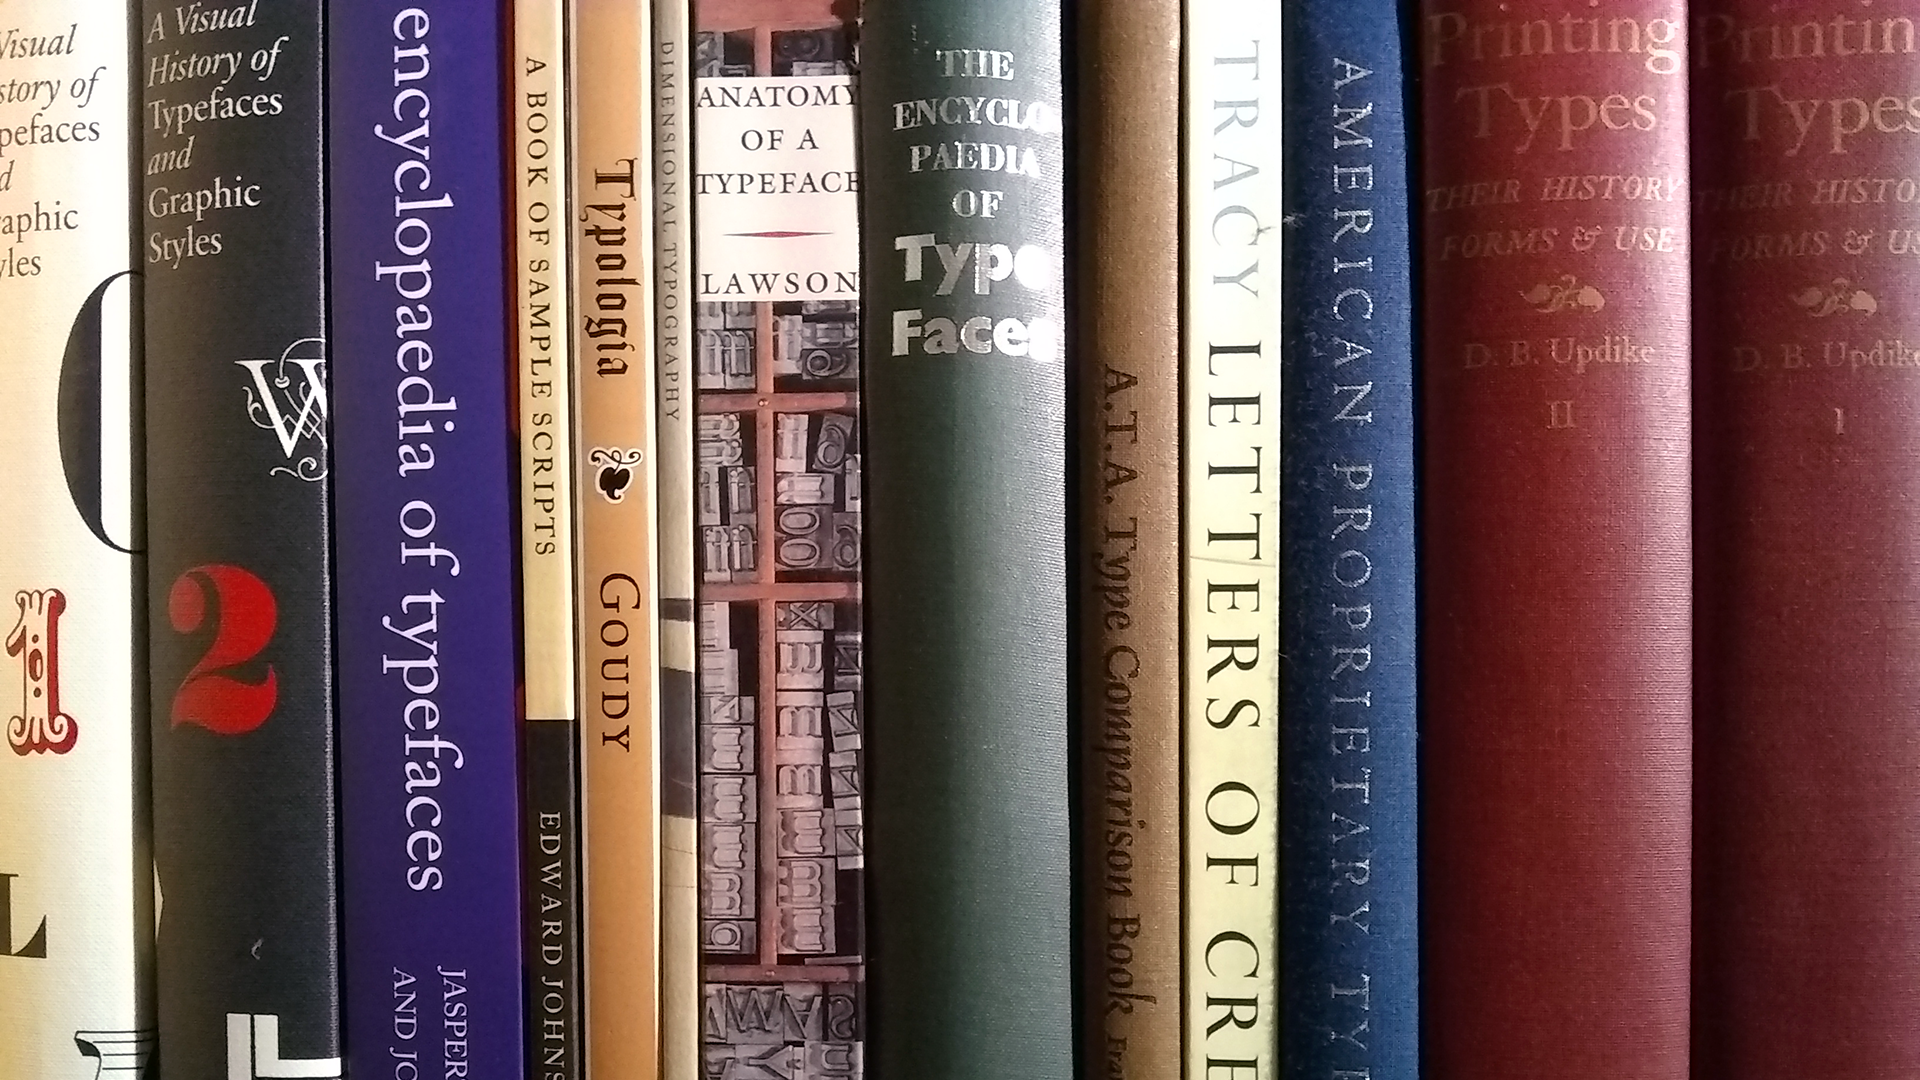 Book spines lined up on a book shelf.